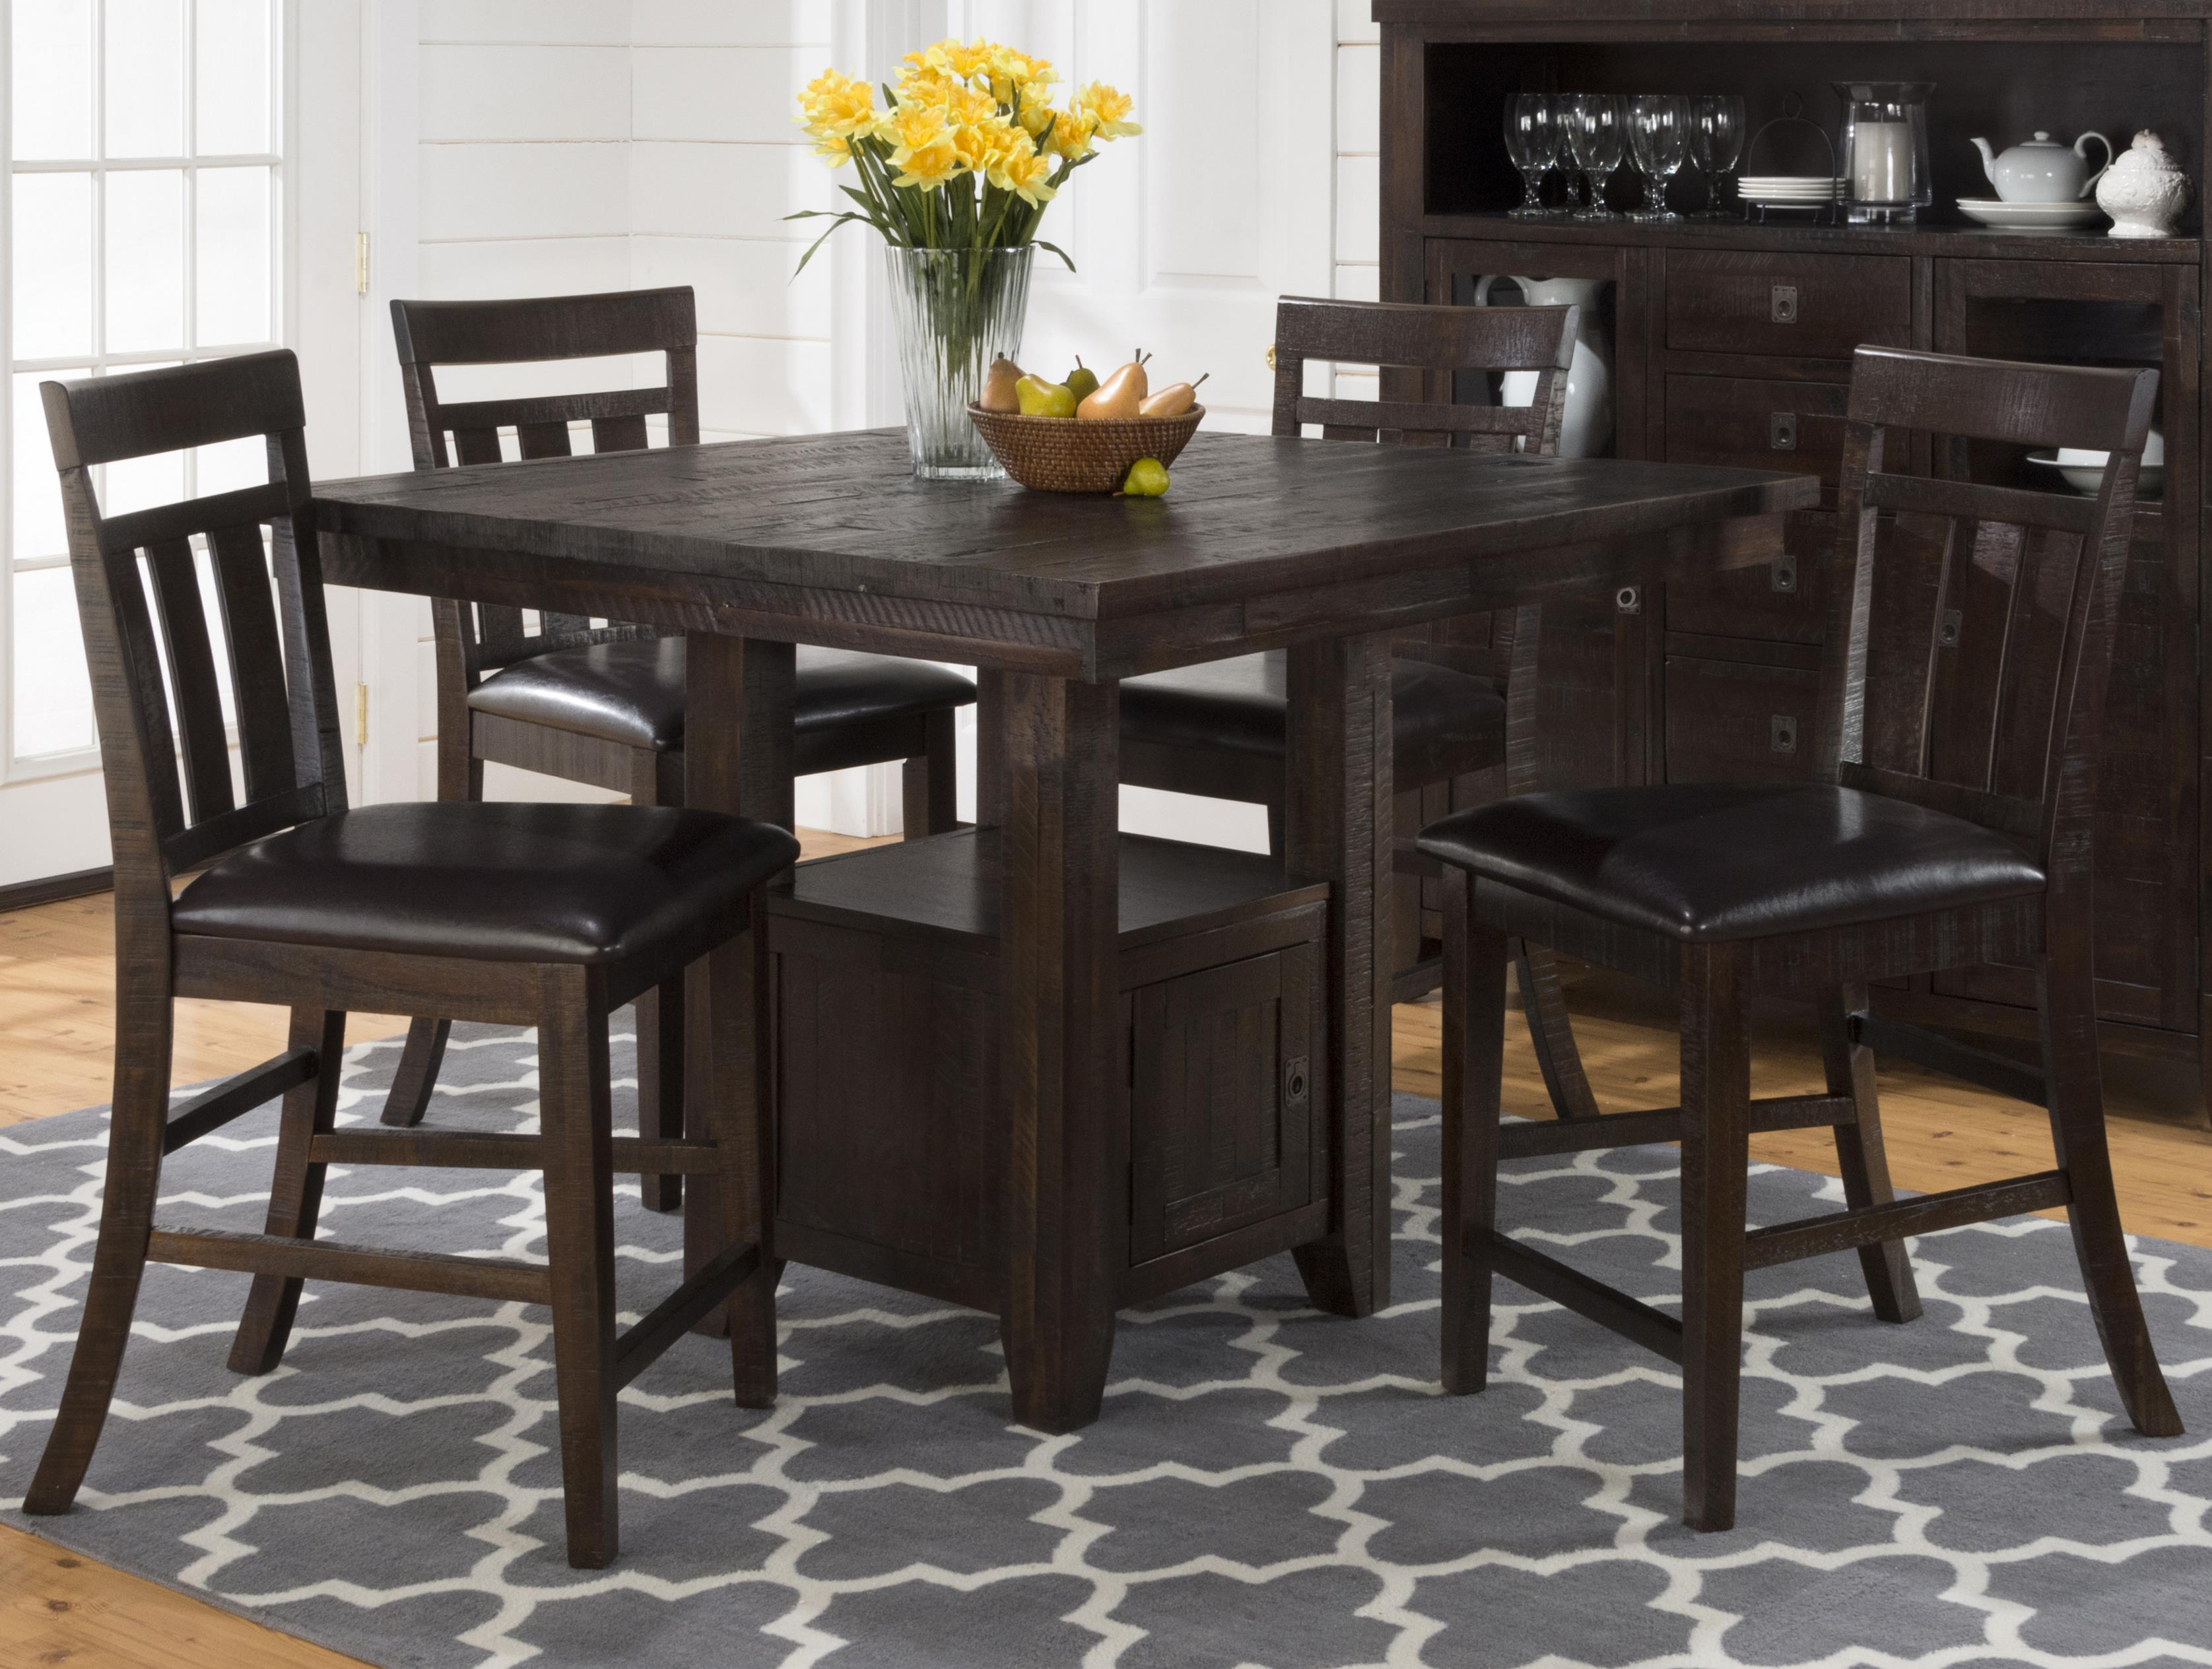 Jofran Kona Grove Pub Table with Storage Base and Chairs Set - Item Number: 705-48+4x705-BS410KD